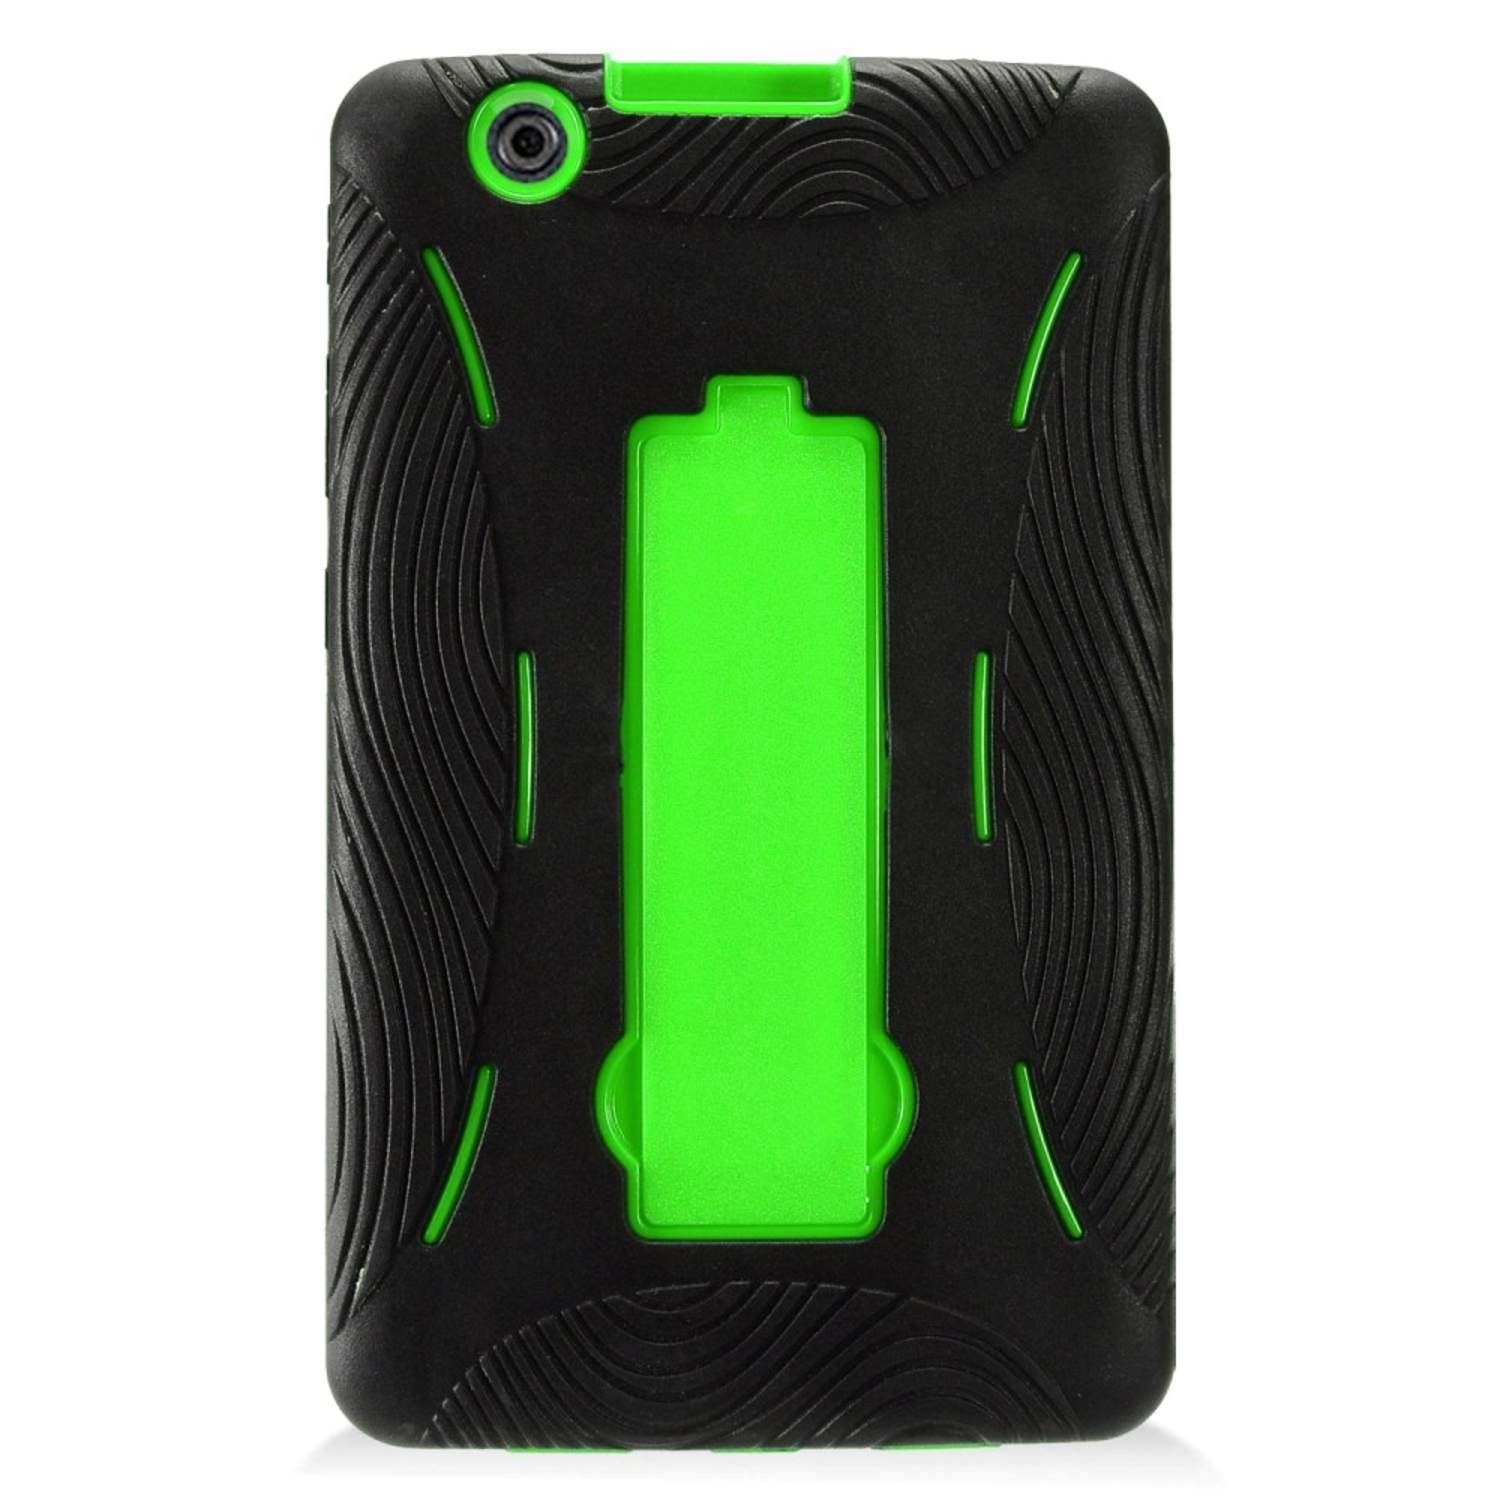 LG G Pad 8.0/G Pad X 8.0 Case, by Insten Symbiosis Stand Rubber Silicone/Plastic Case Cover For LG G Pad 8.0/G Pad X 8.0